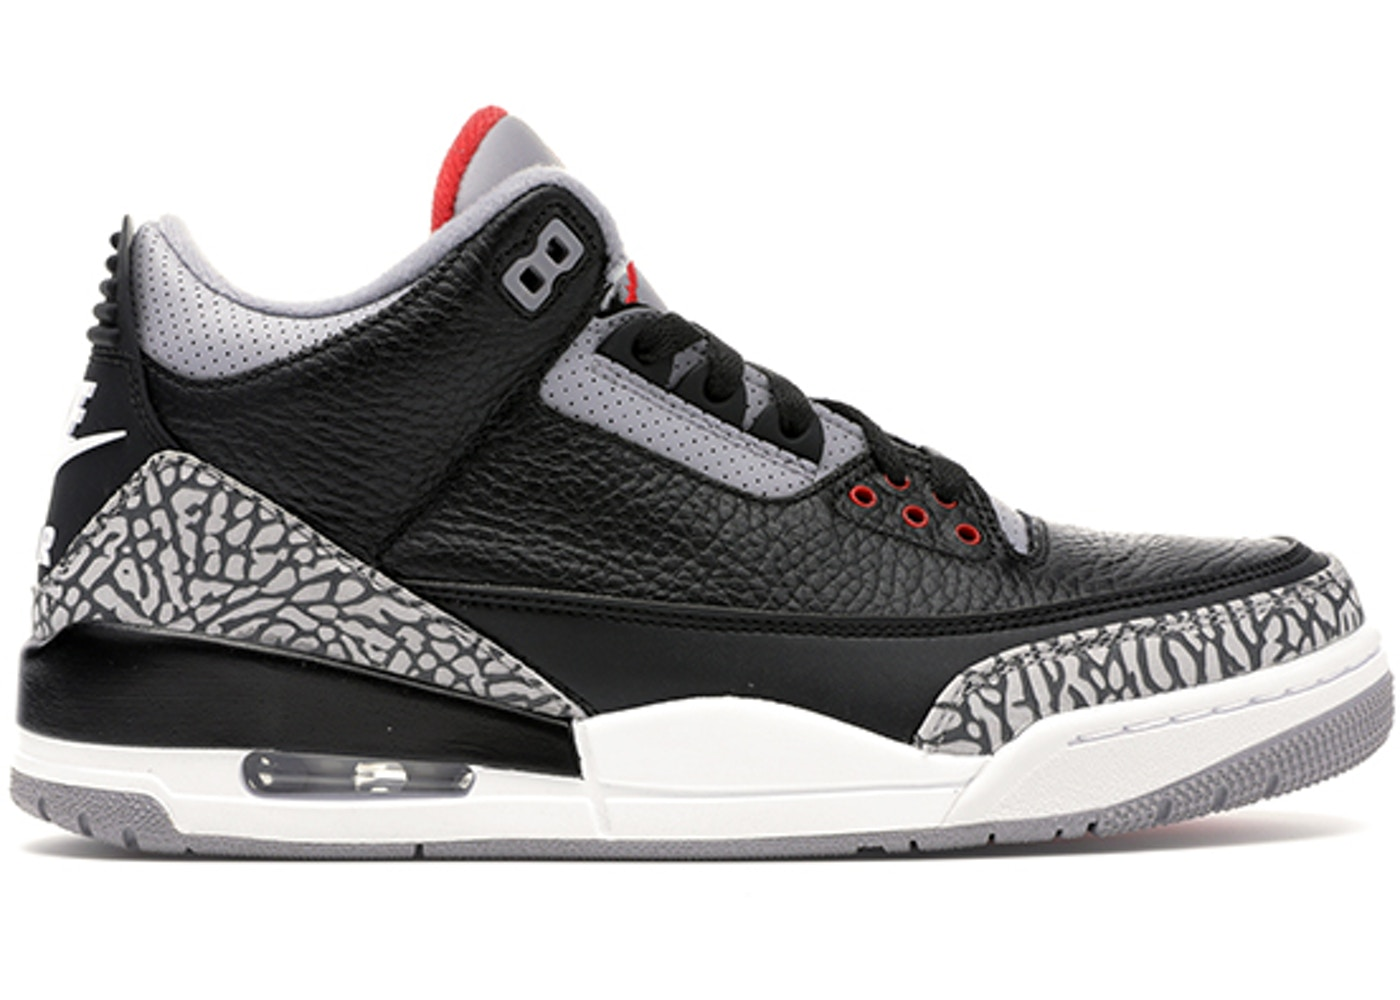 outlet store c720b 230f2 Buy Air Jordan 3 Shoes & Deadstock Sneakers